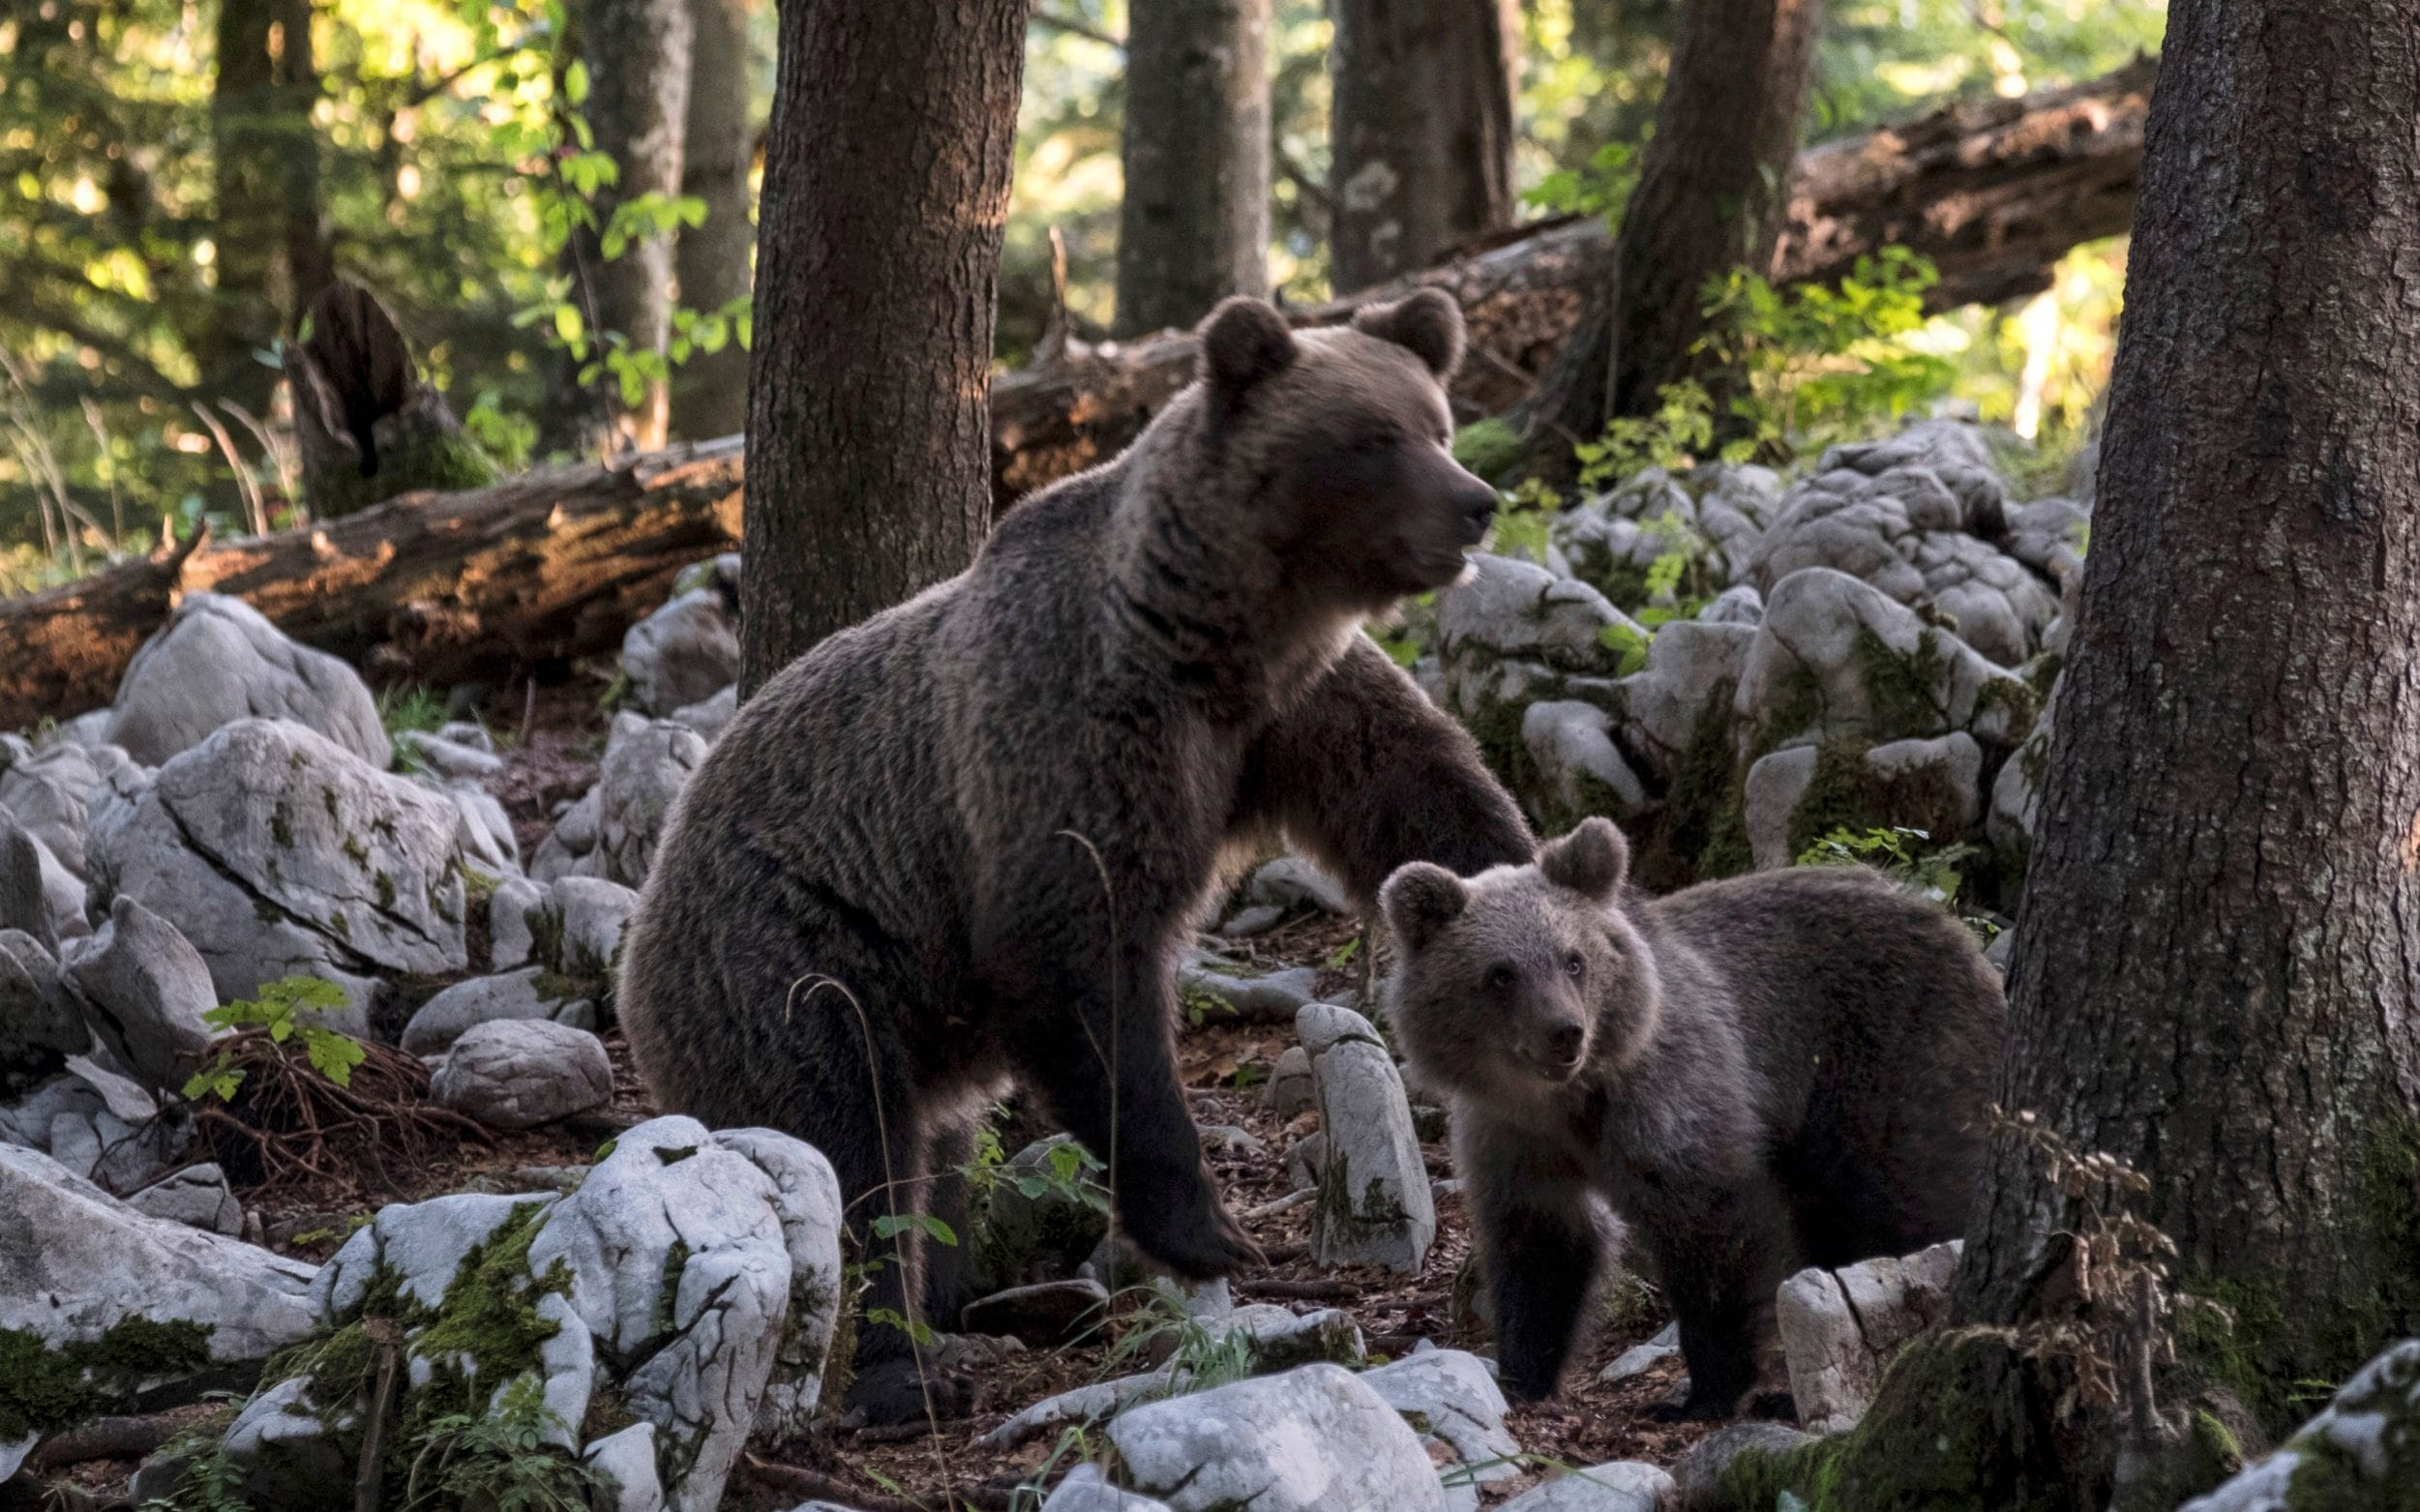 Hungry brown bears who took over Slovenias forests face being shot before they reach the villages